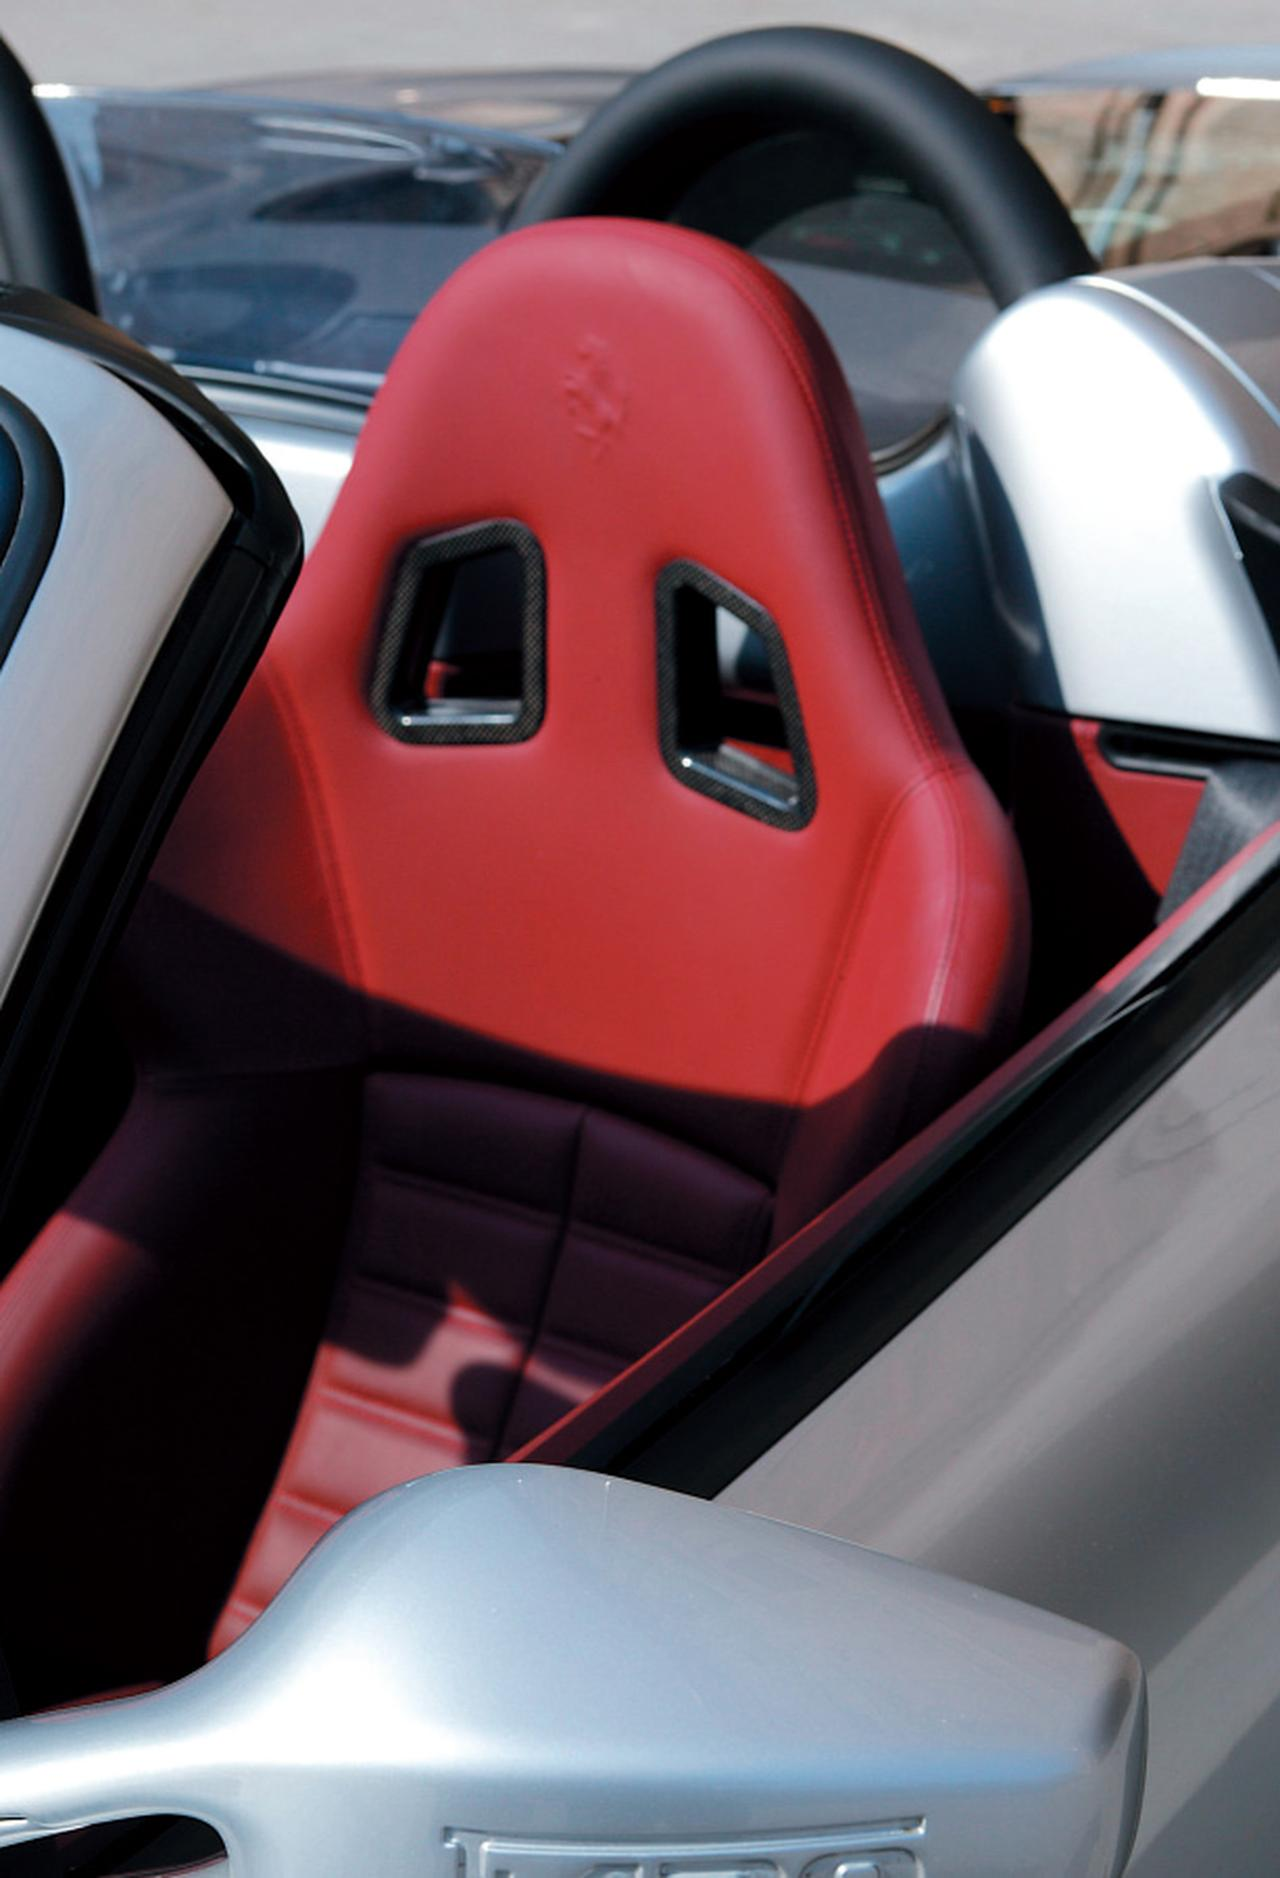 Images : 8番目の画像 - フェラーリ F430 スパイダー(2005年) - LAWRENCE - Motorcycle x Cars + α = Your Life.